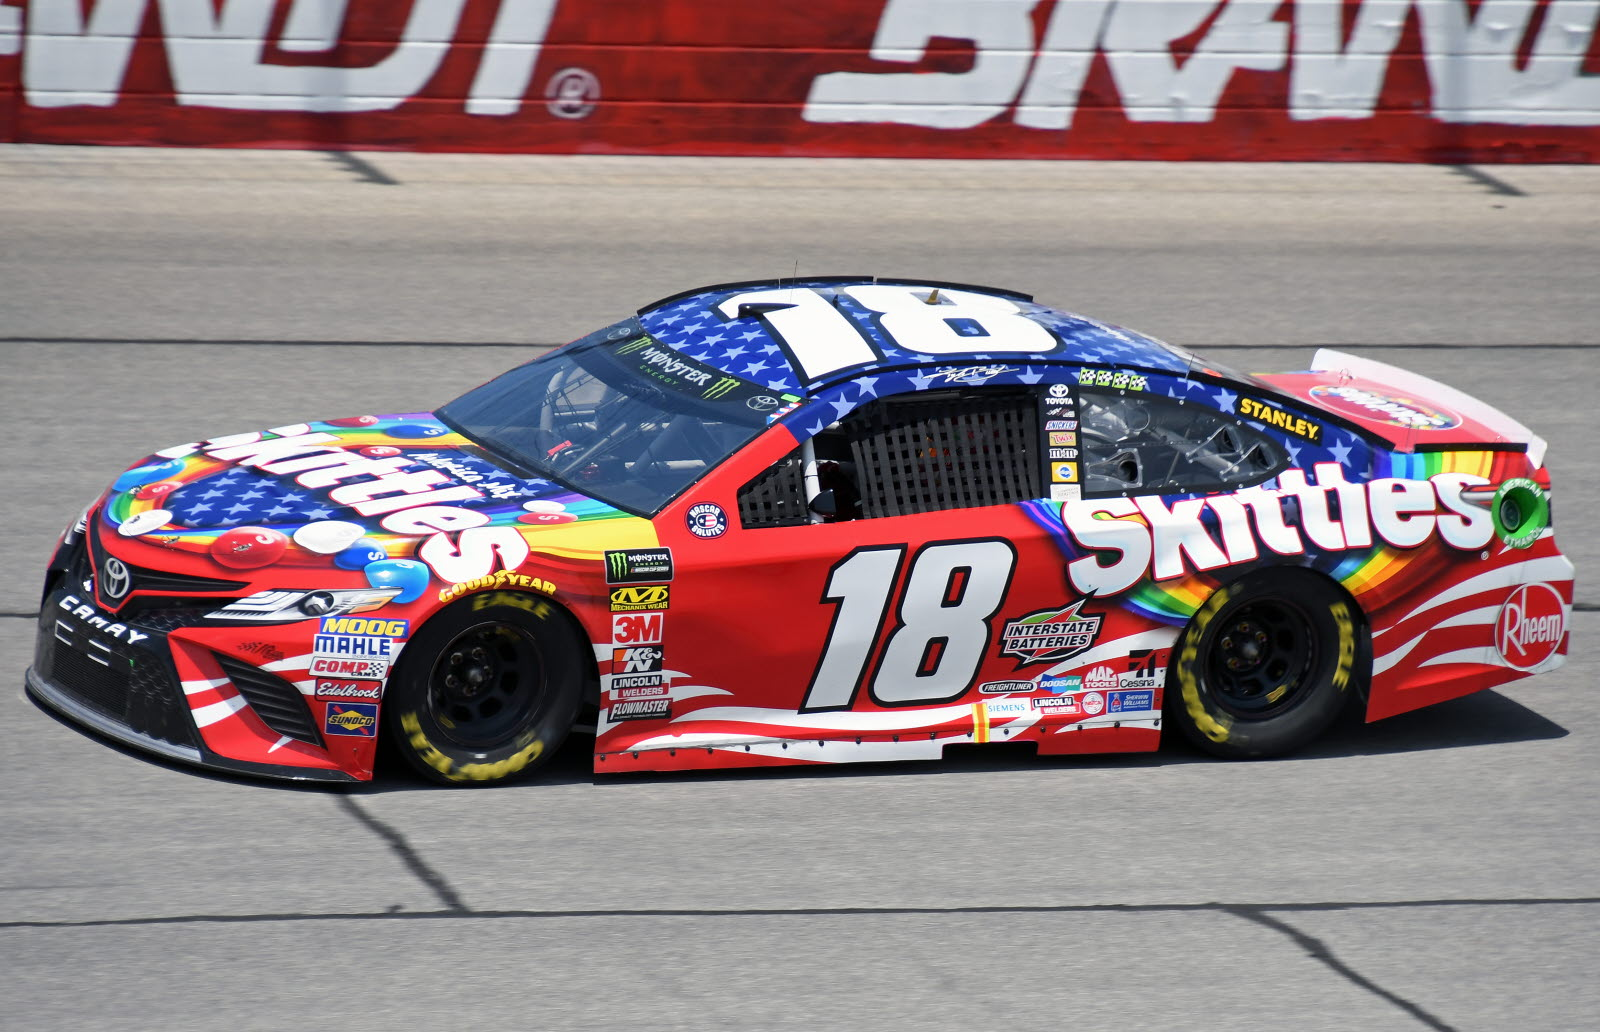 Kyle Busch and his No. 18 on their way to victory. (Stan Kalwasinski Photo)